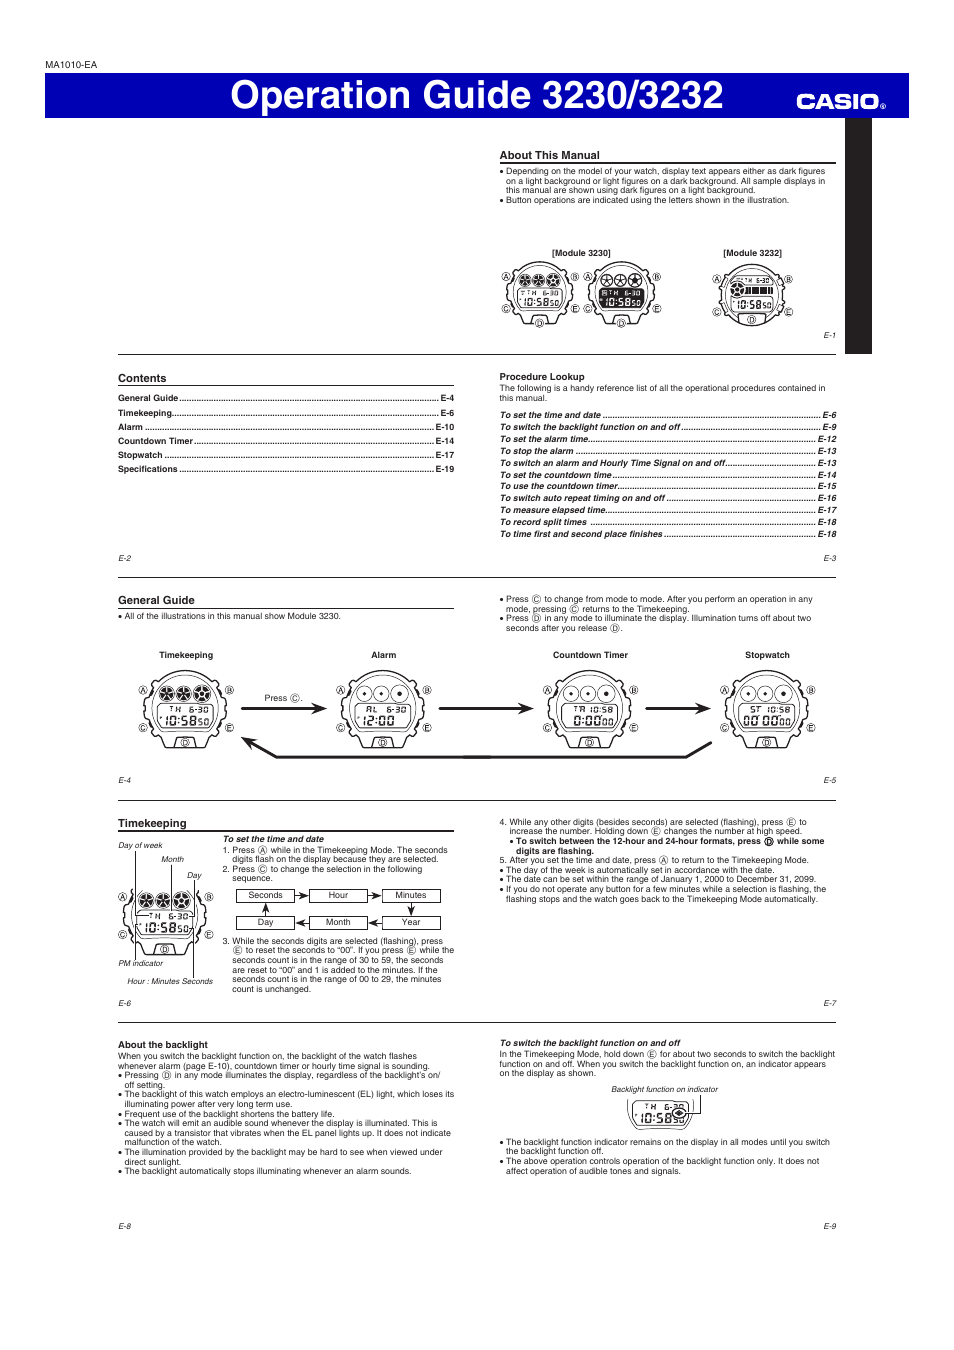 G Shock Gwt5030c1jr User Manual 3 Pages Also For Dw 6900ww 7 To Casio 6900nb 7dr Fu Club 6930d 1 6900sc 8dr 4 6900sb 8